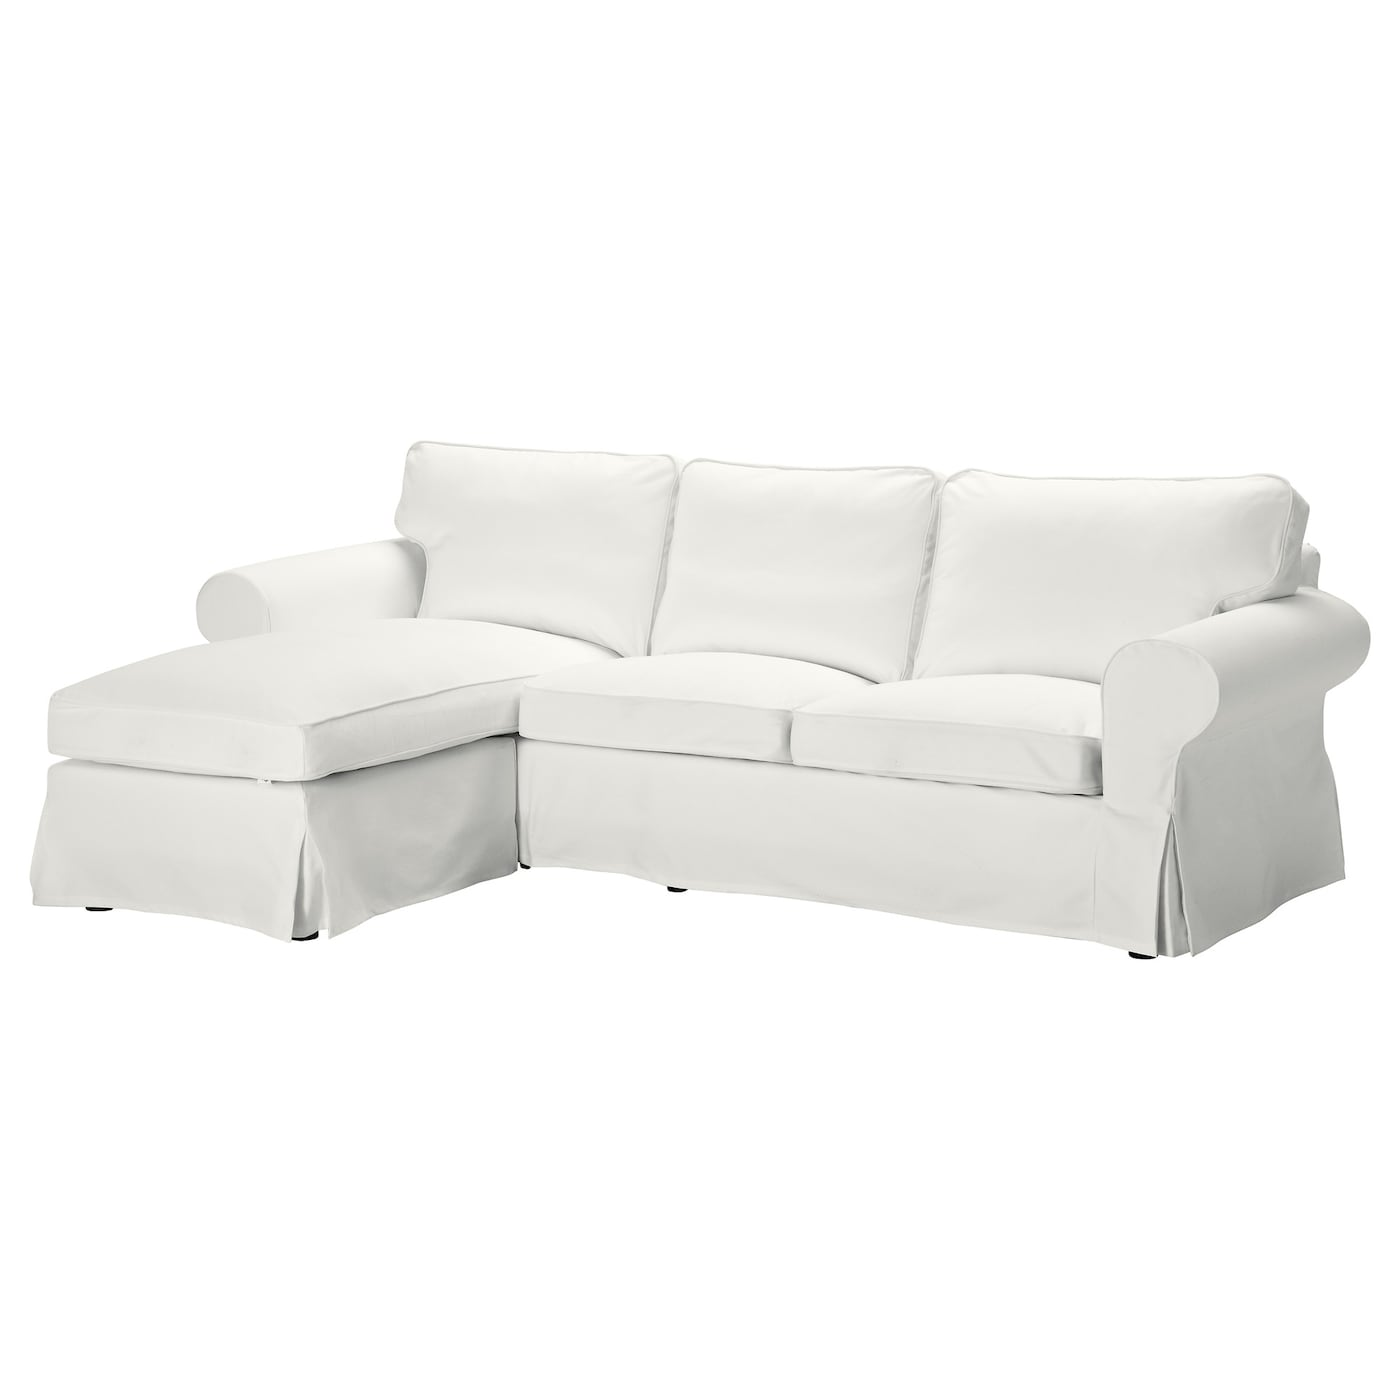 Ektorp two seat sofa and chaise longue blekinge white ikea for Chaise longue ikea